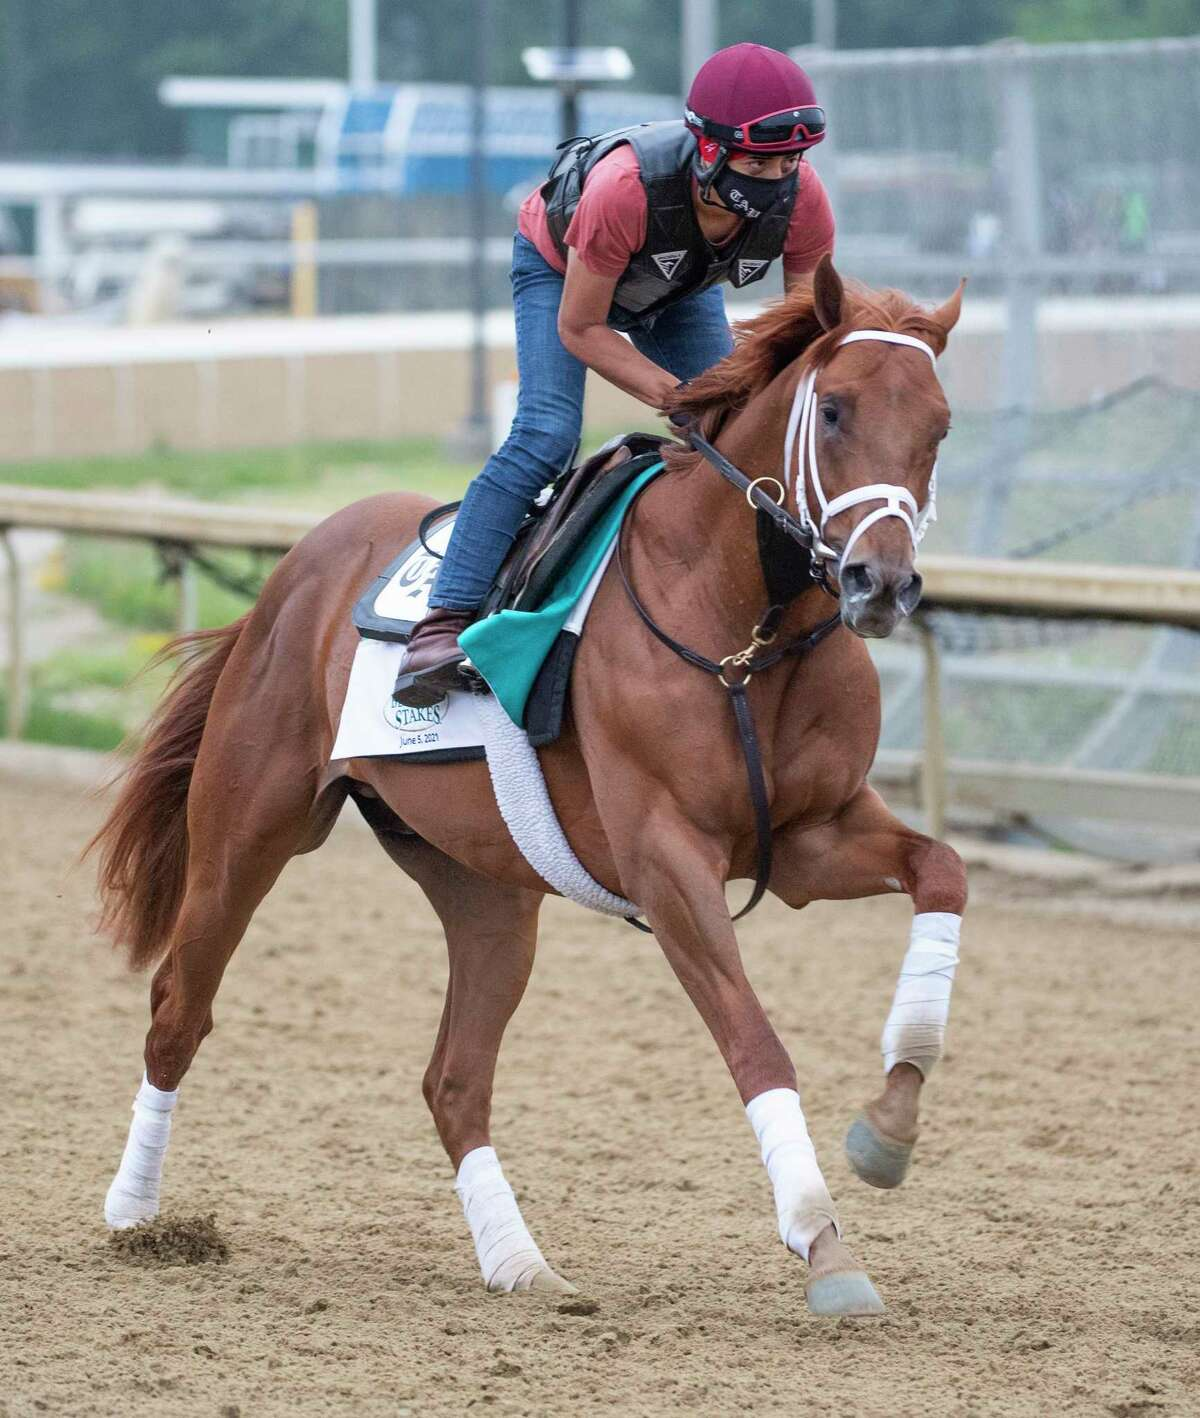 Known Agenda gets in some morning exercise on the training track at Belmont Park on Thursday June 3, 2021, in advance of the Belmont Stakes.